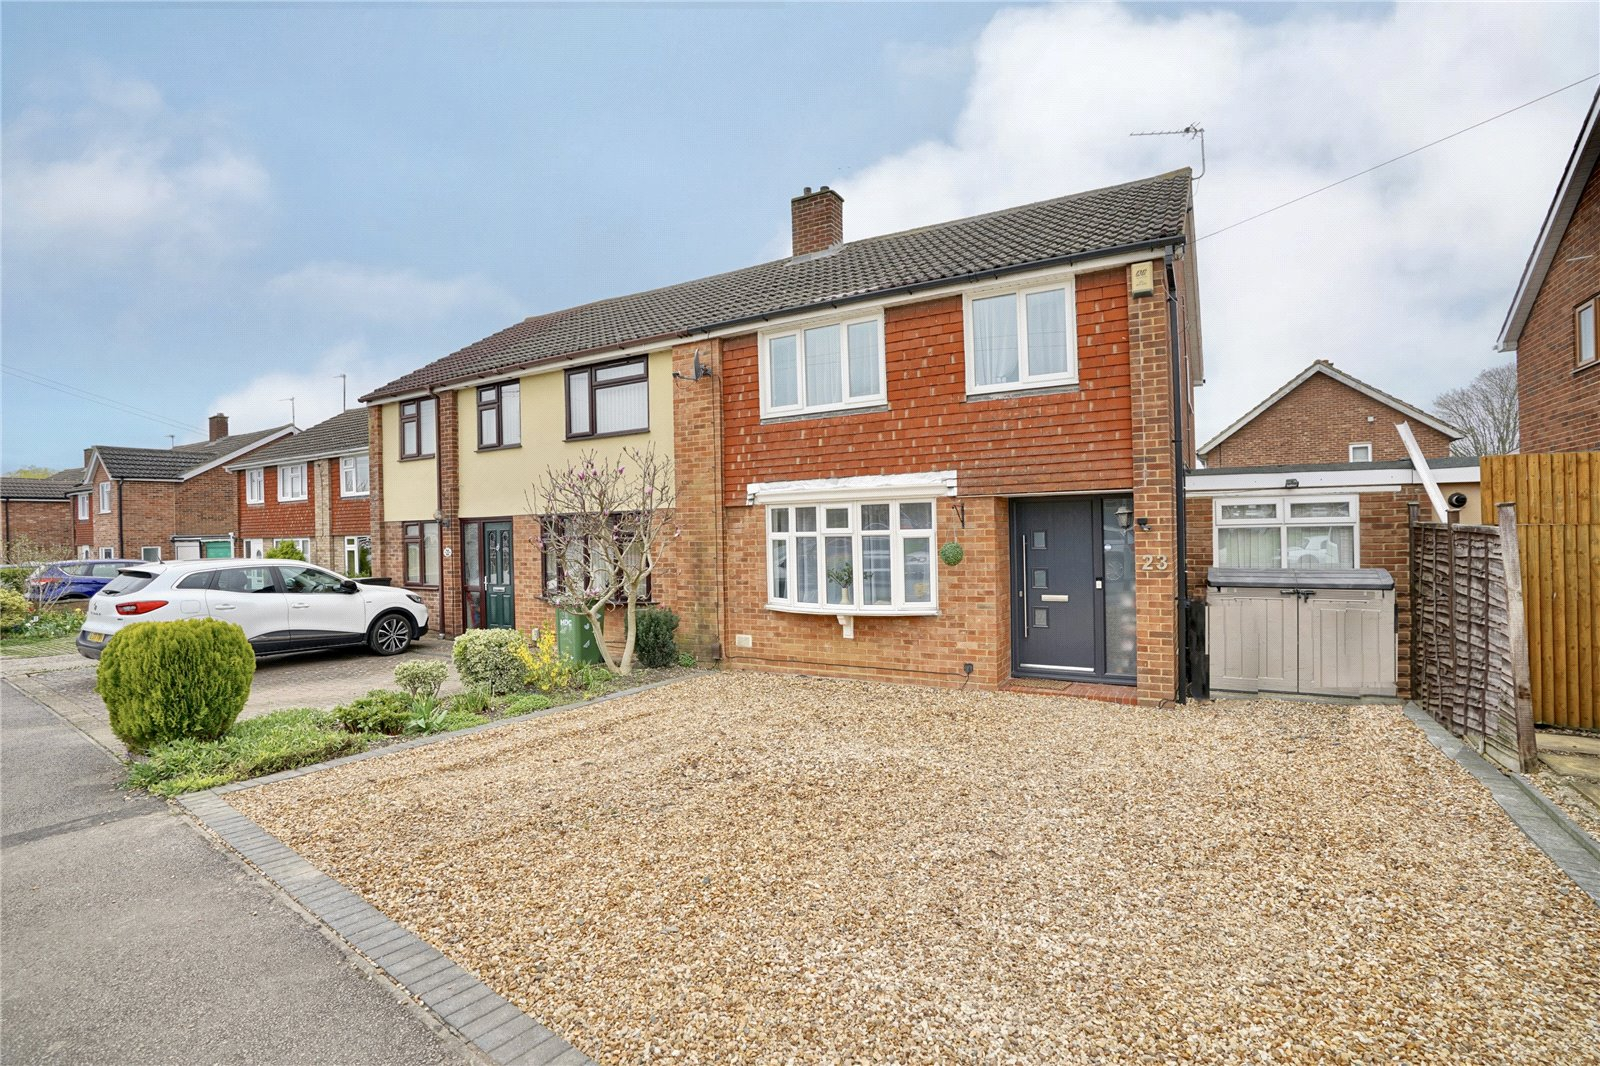 3 bed house for sale in Longsands Road, St. Neots, PE19